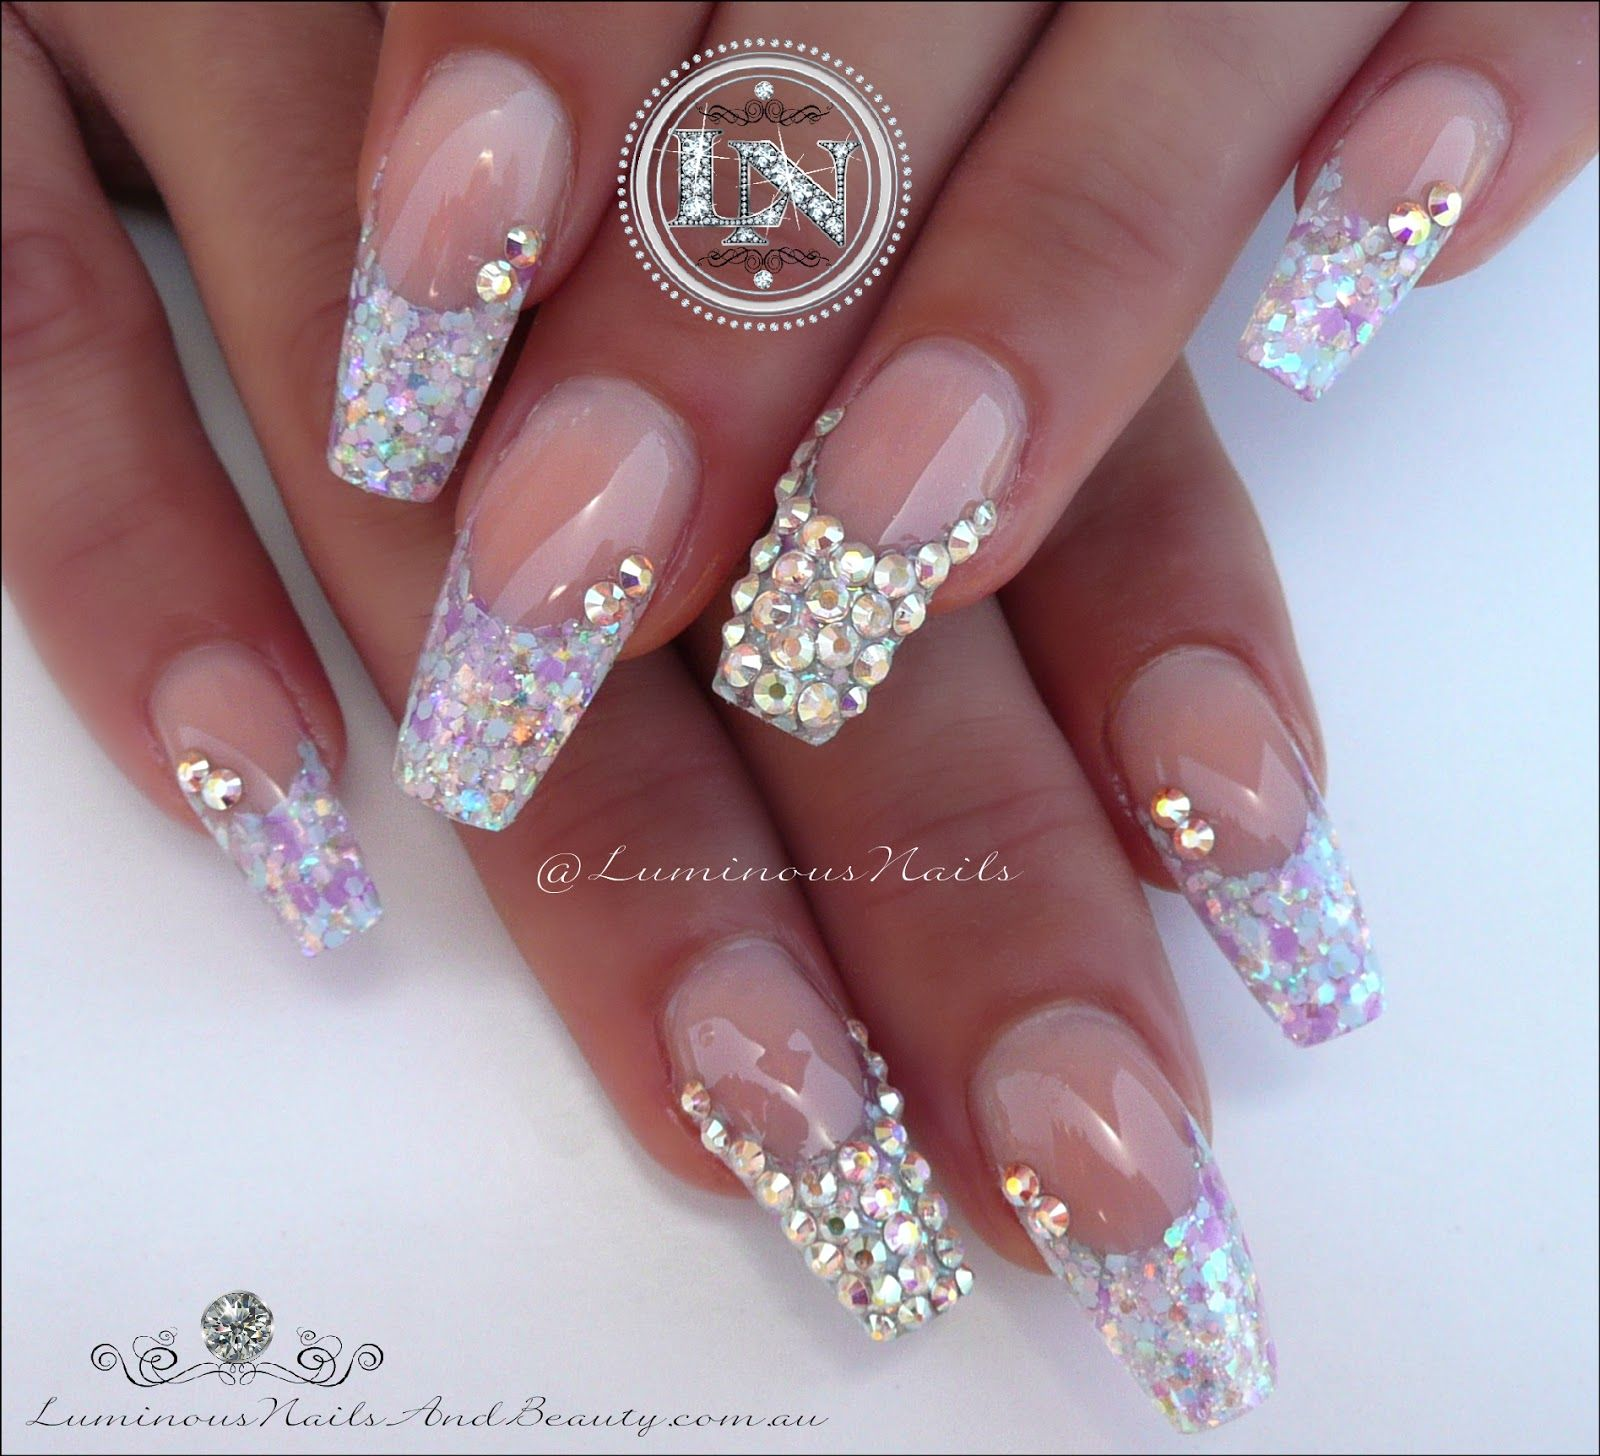 Candy Coated Nails With Bling! Sculptured Acrylic With